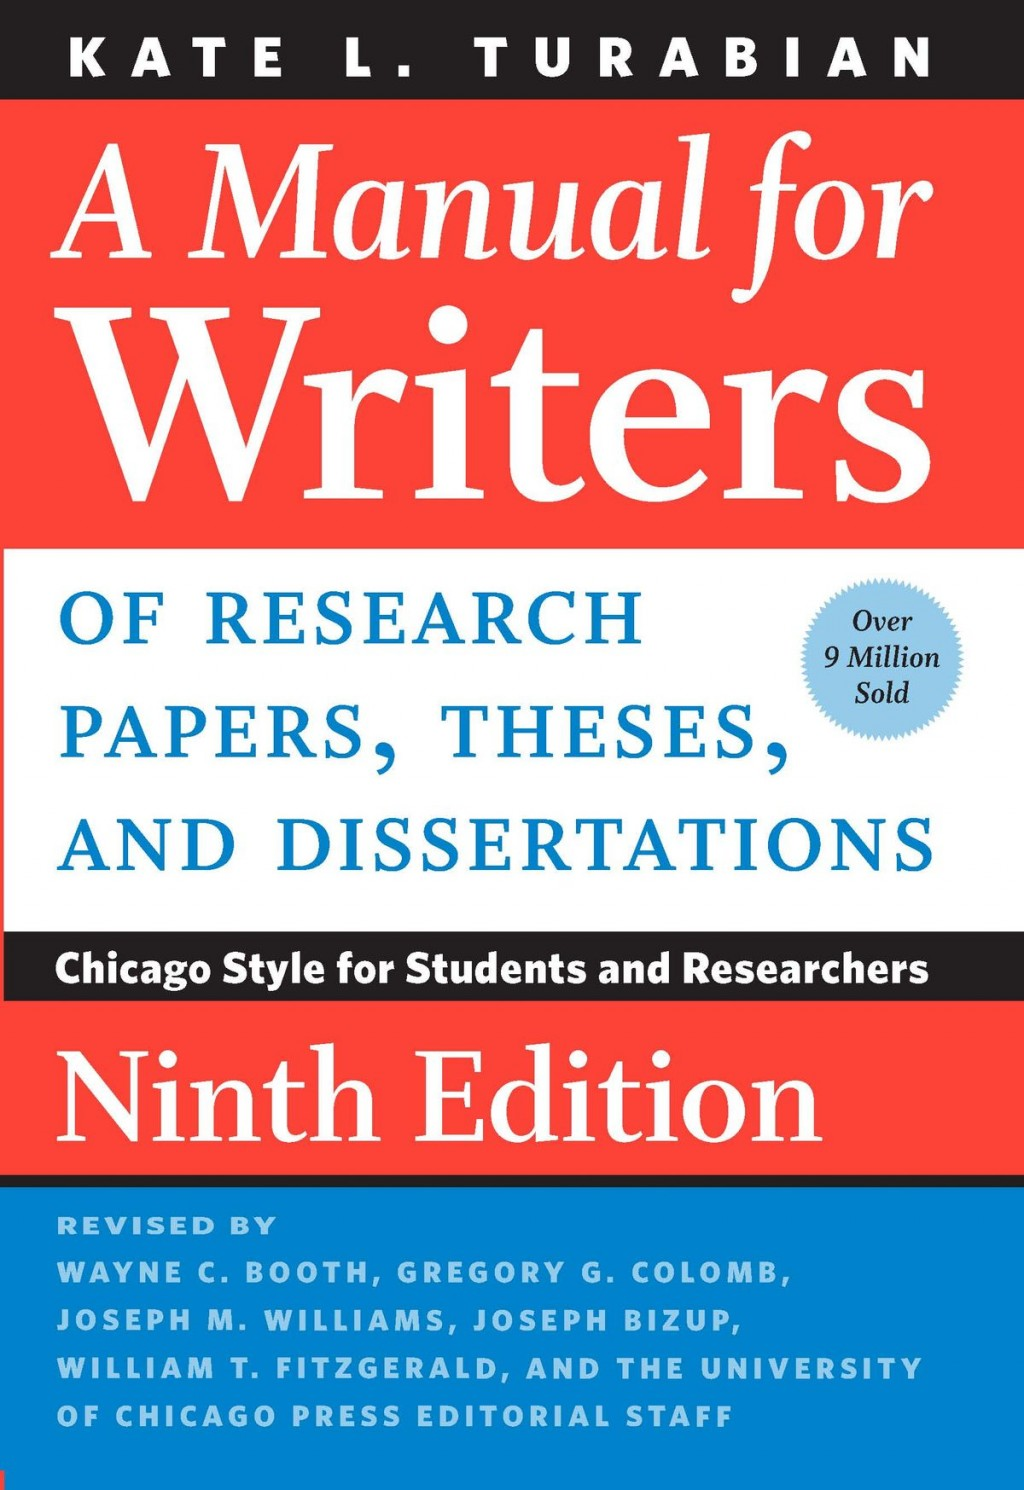 012 Research Paper Papers For Dummies Manual Writers Of Theses And Dissertations Ninth Unforgettable Pdf Download Free Large